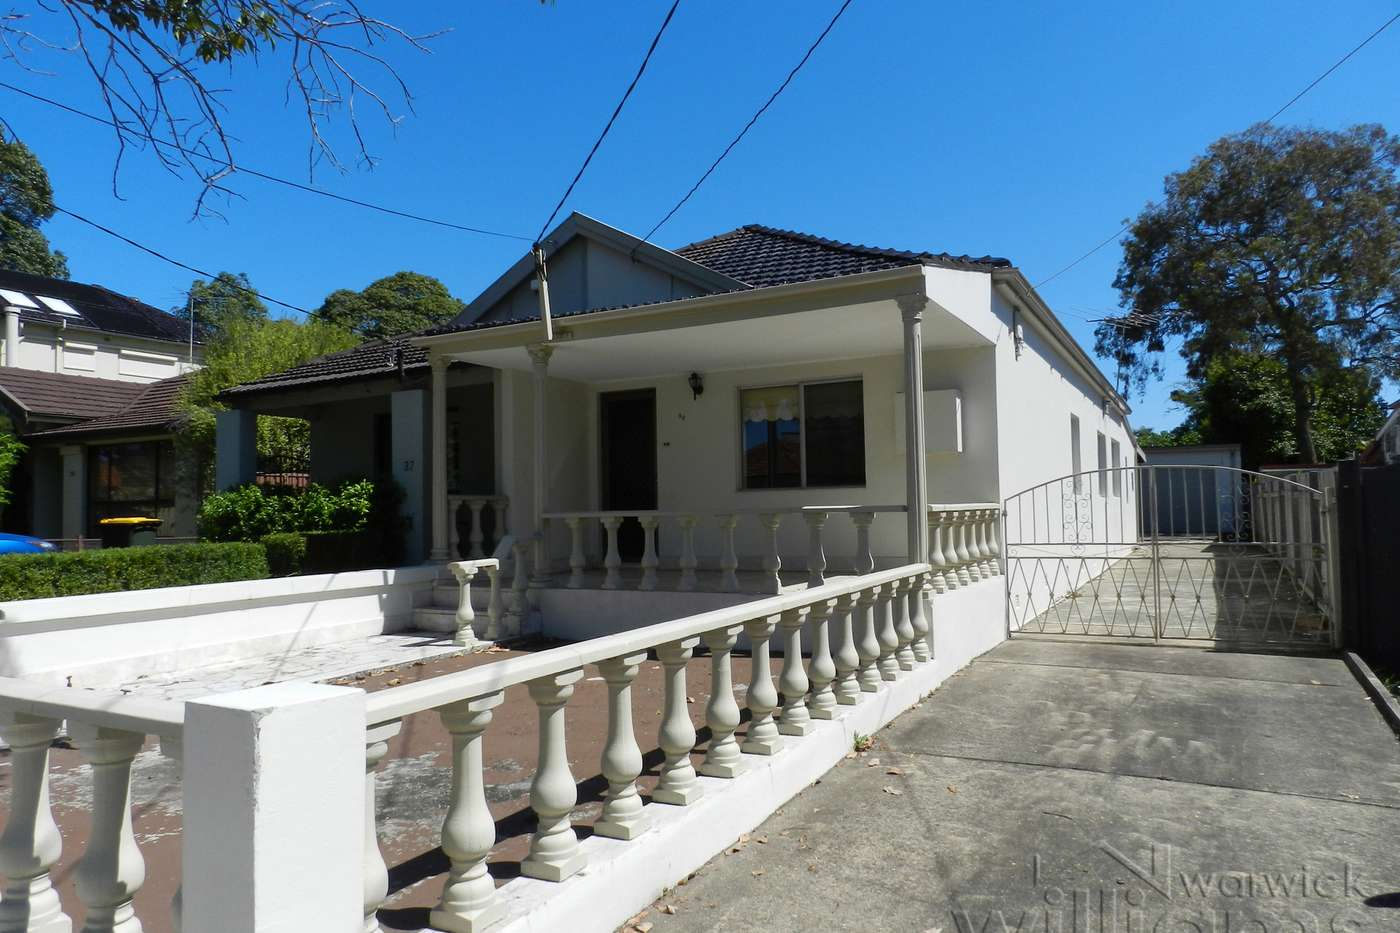 Main view of Homely house listing, 39 Arthur Street, Rodd Point, NSW 2046